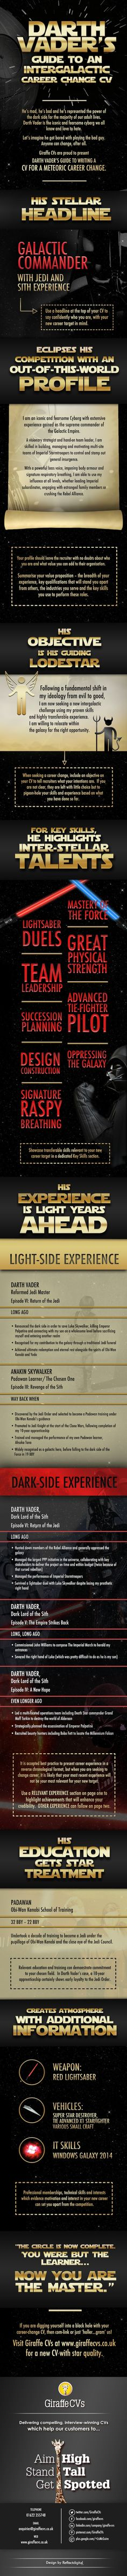 Darth Vader's Guide to an Intergalactic Career Change CV [INFOGRAPHIC] on http://theundercoverrecruiter.com